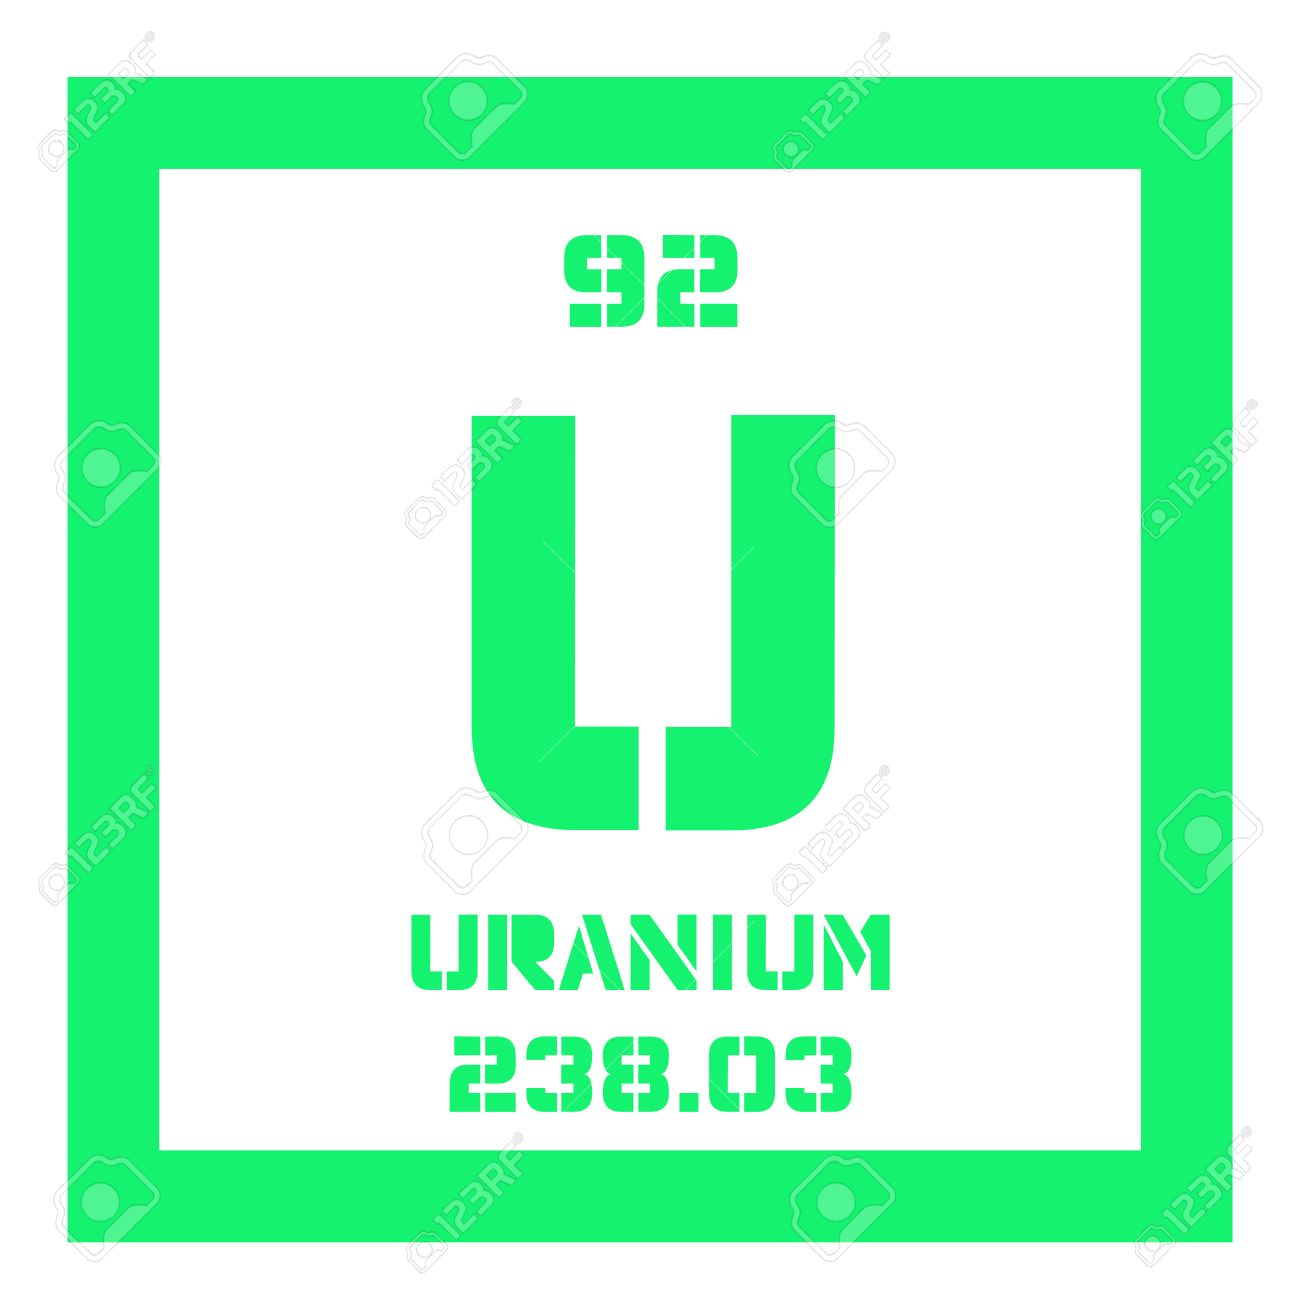 Uranium chemical element uranium is weakly radioactive metal uranium chemical element uranium is weakly radioactive metal colored icon with atomic number and urtaz Gallery